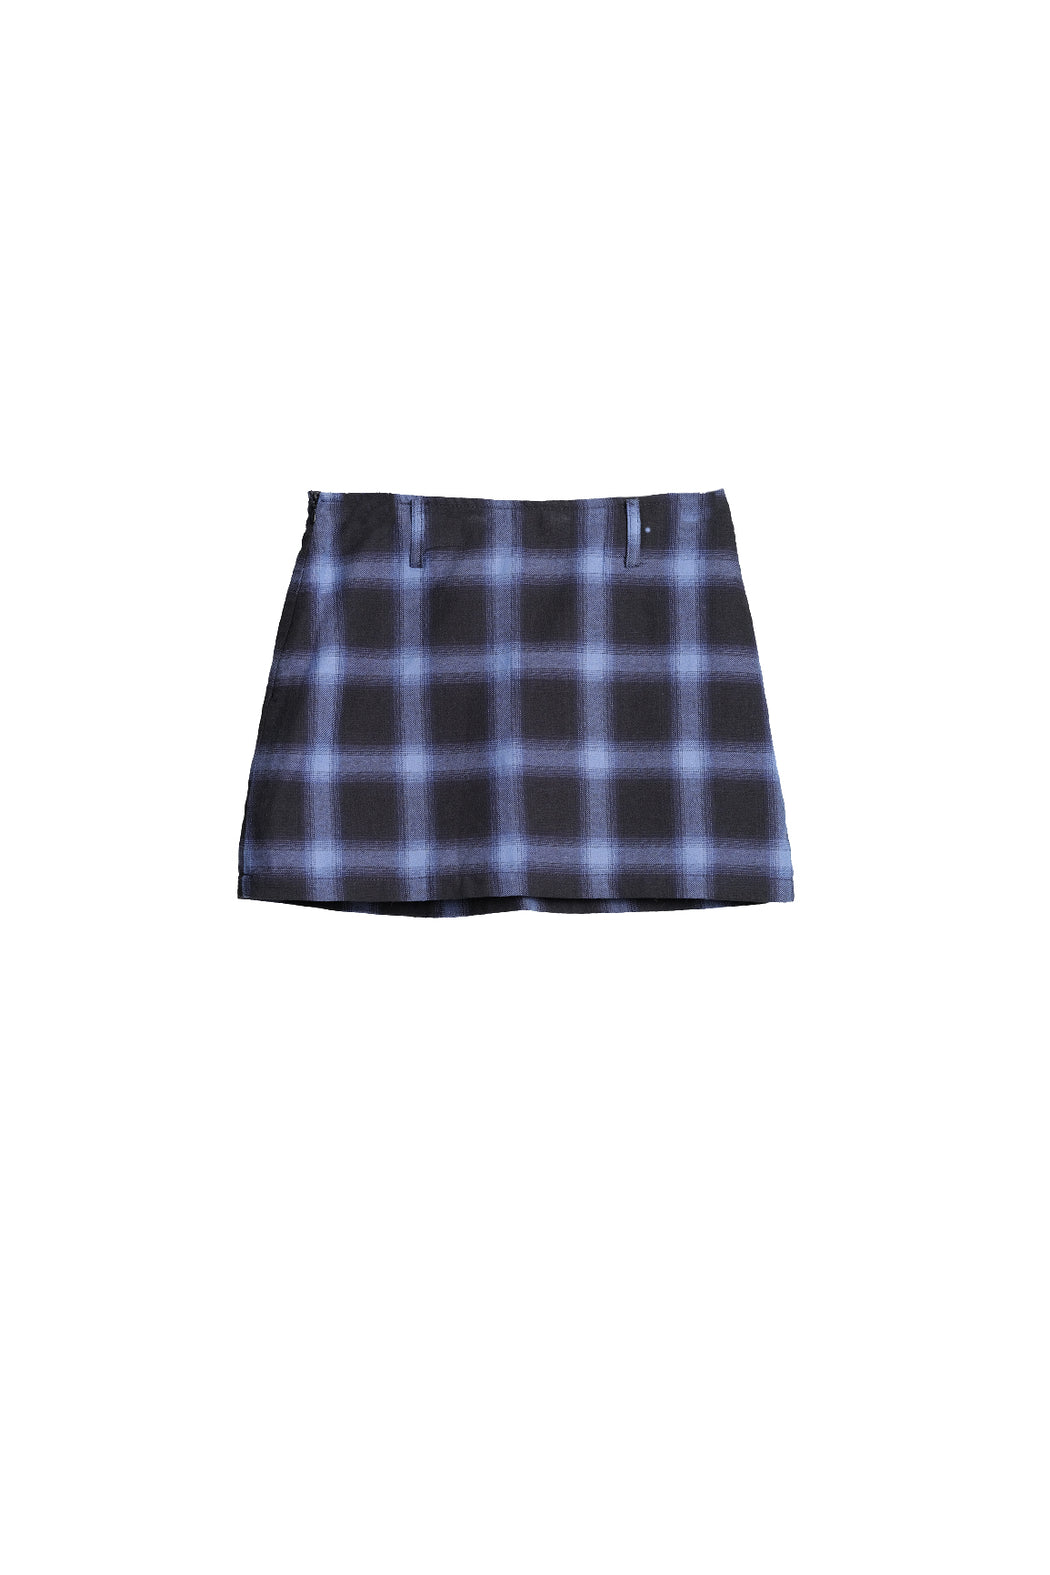 Daria Skirt - Blue Plaid